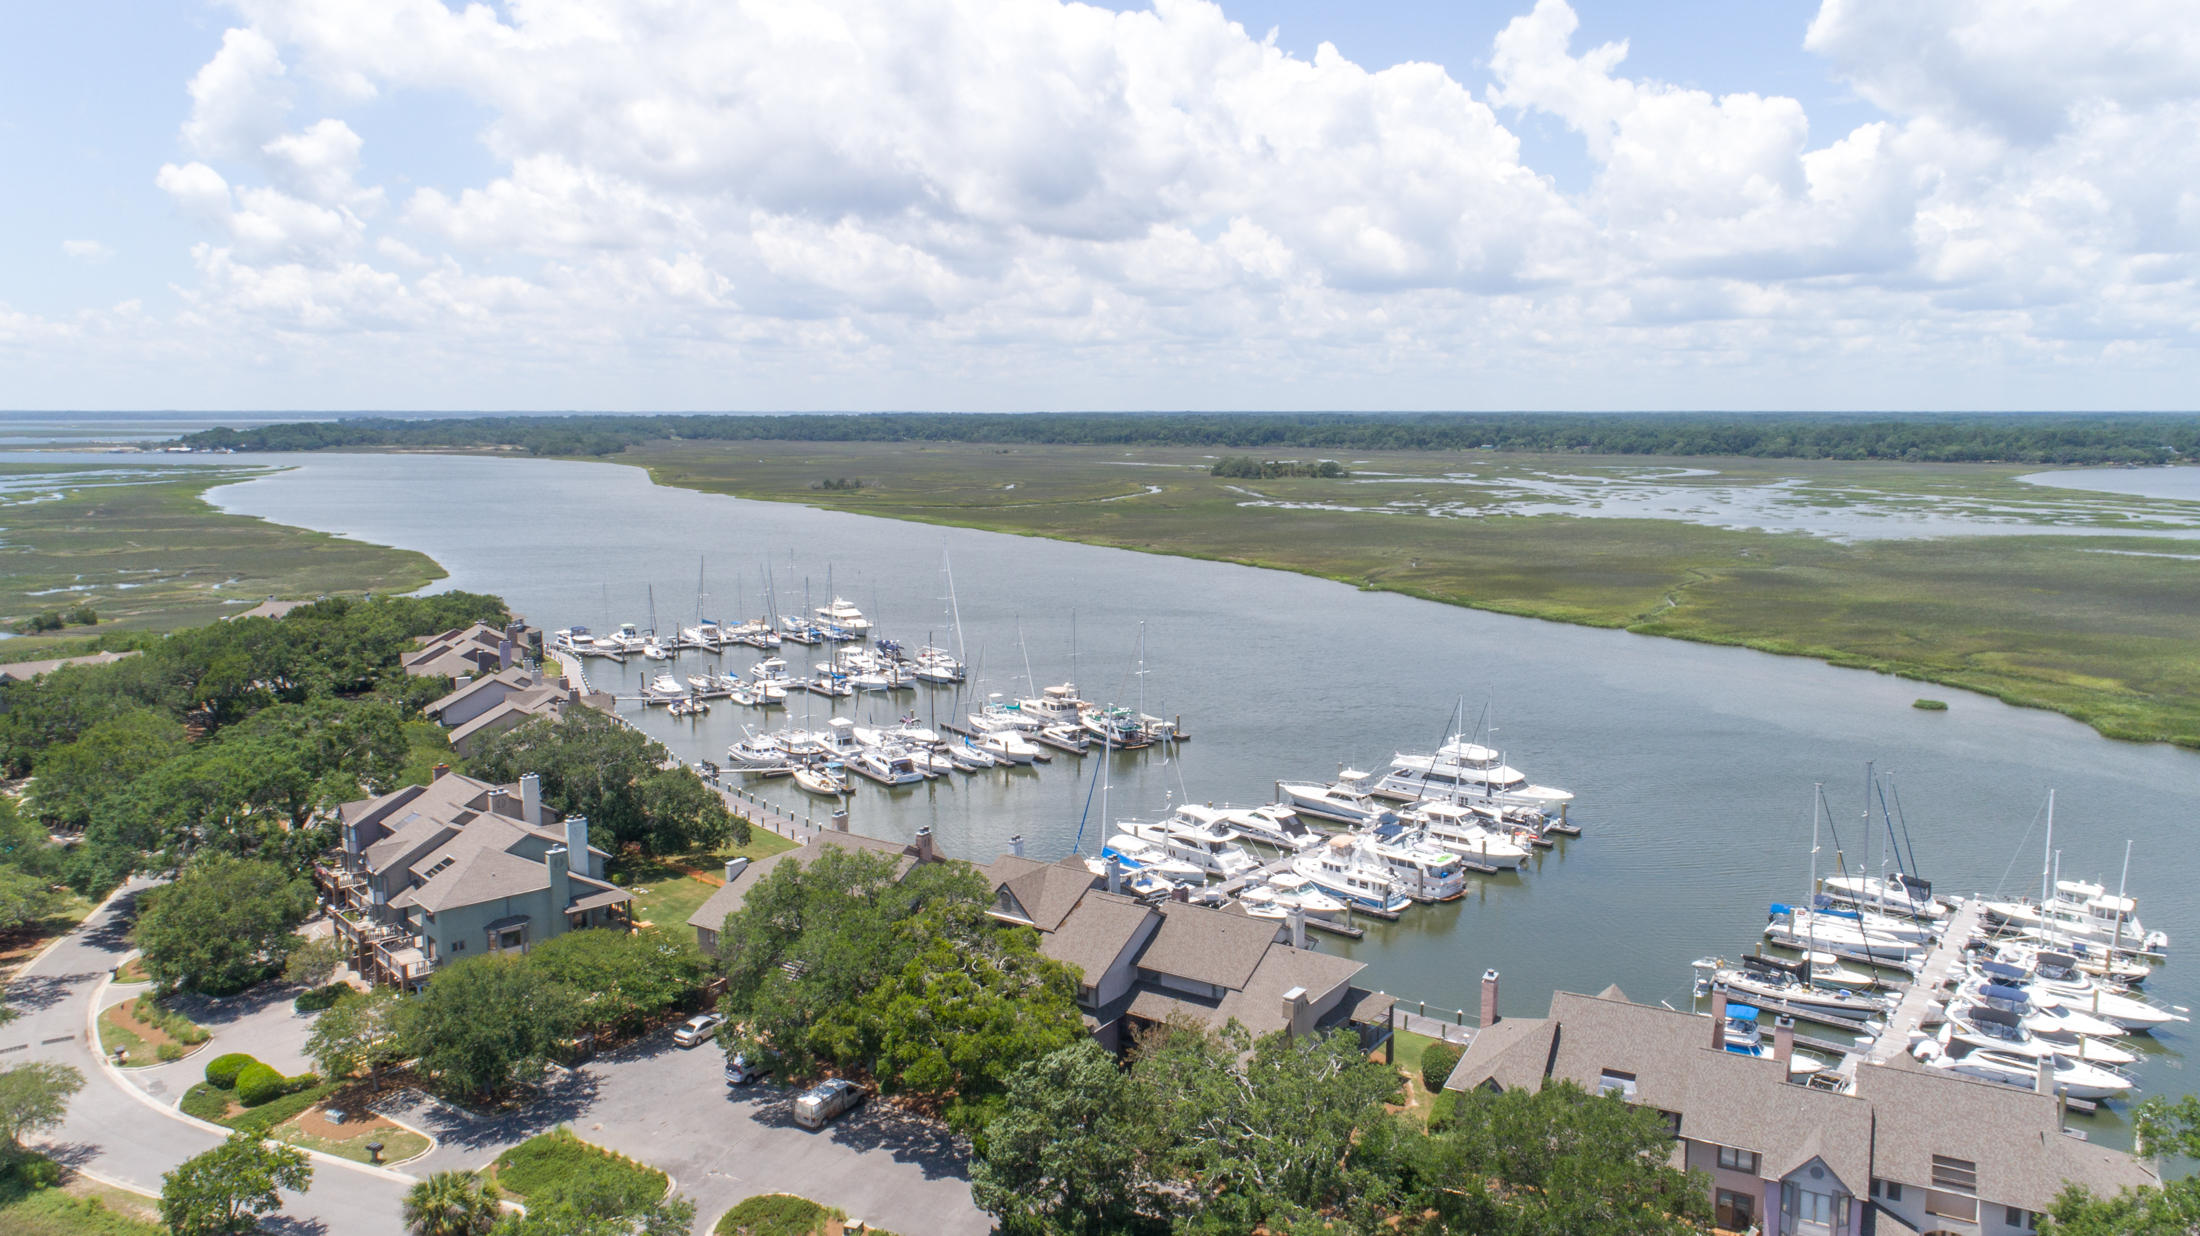 Seabrook Island Homes For Sale - 1880 Andell Bluff, Seabrook Island, SC - 10